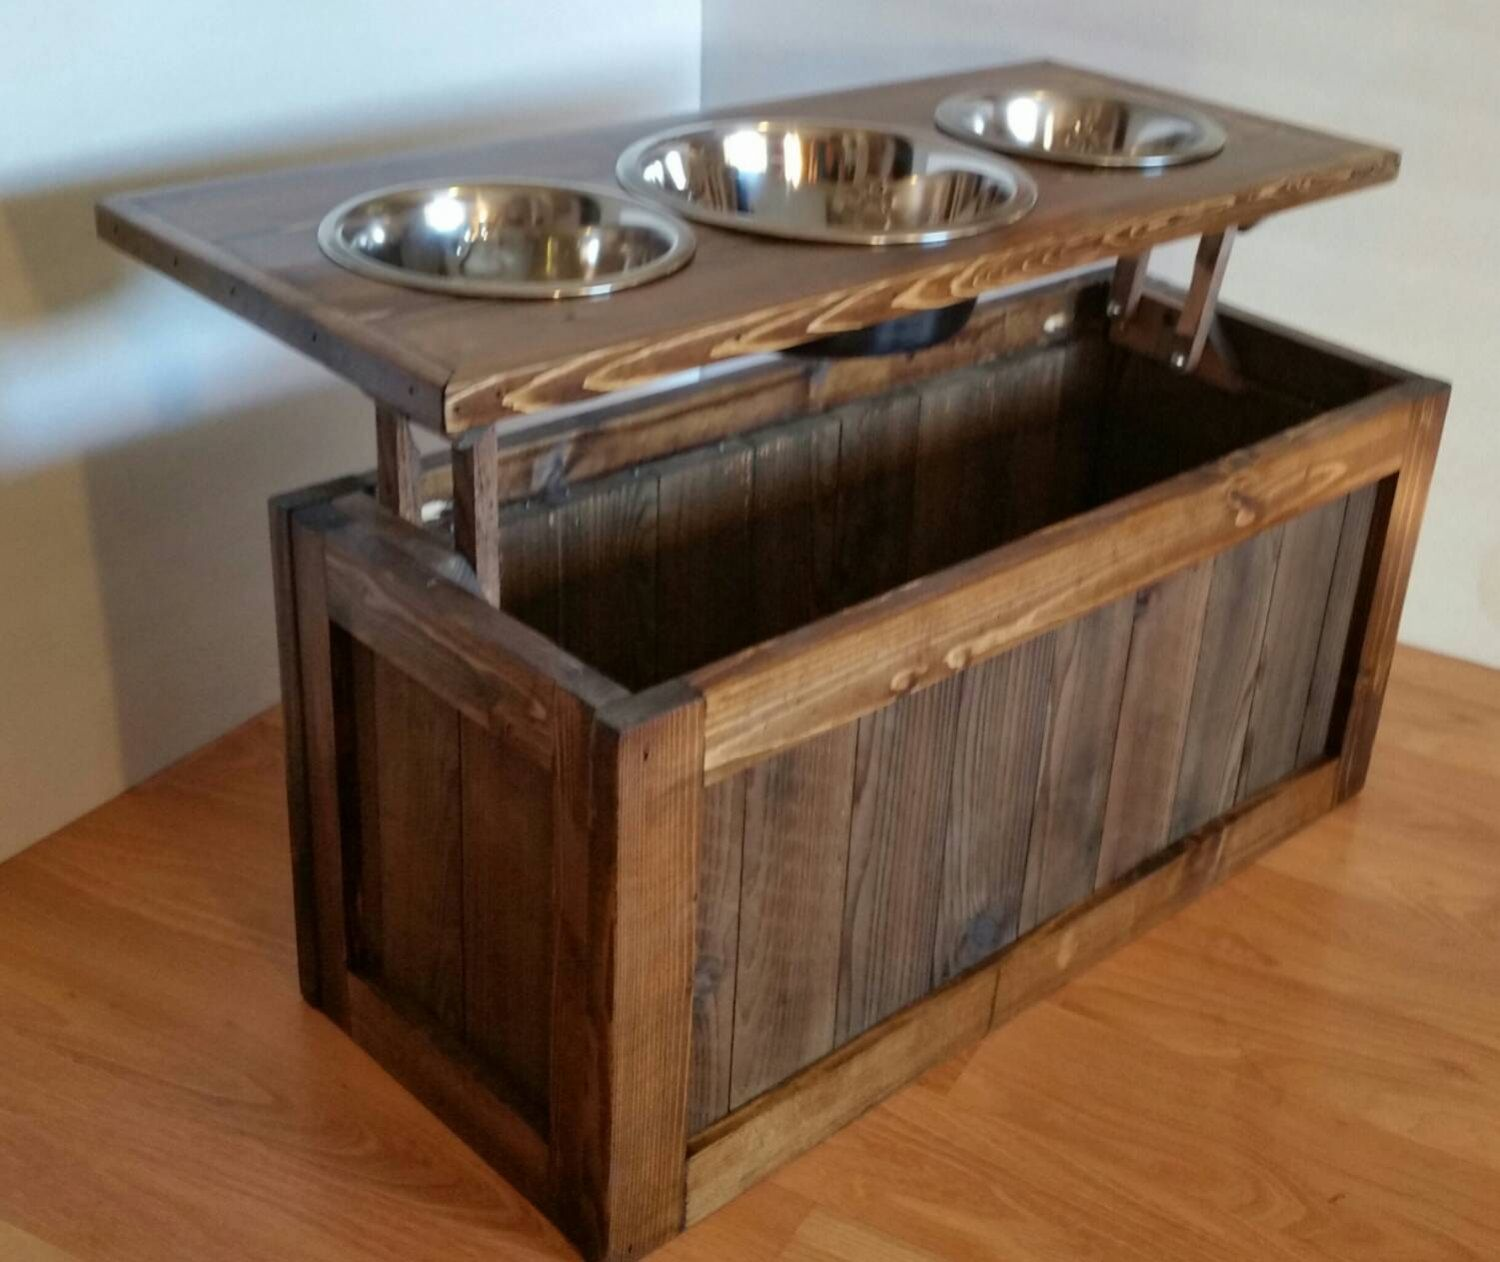 Raised Dog Feeder With Storage, 3 Bowl Dog Feeder, Keep Food Stored Beneath  Bowls